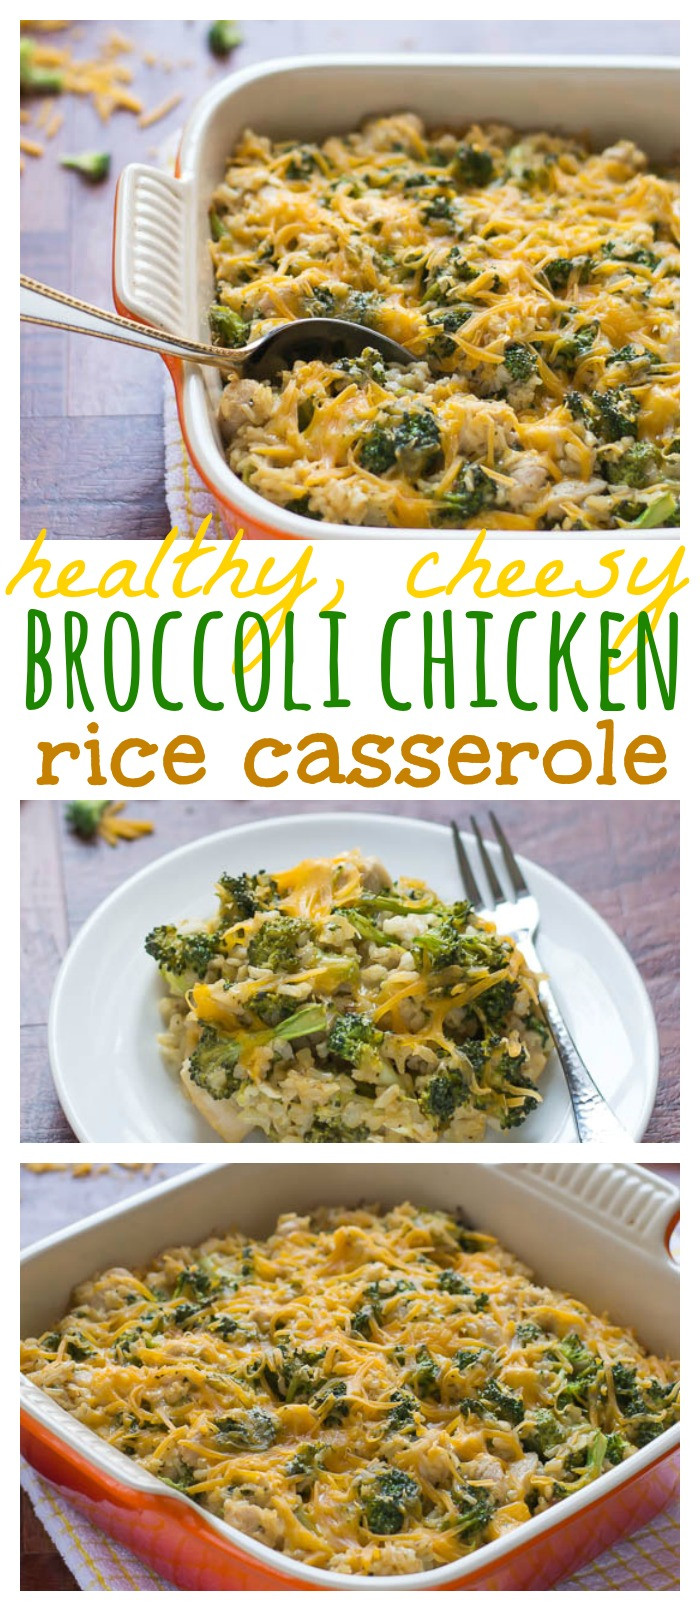 Baked Chicken And Rice Without Canned Soup  chicken and rice casserole without canned soup